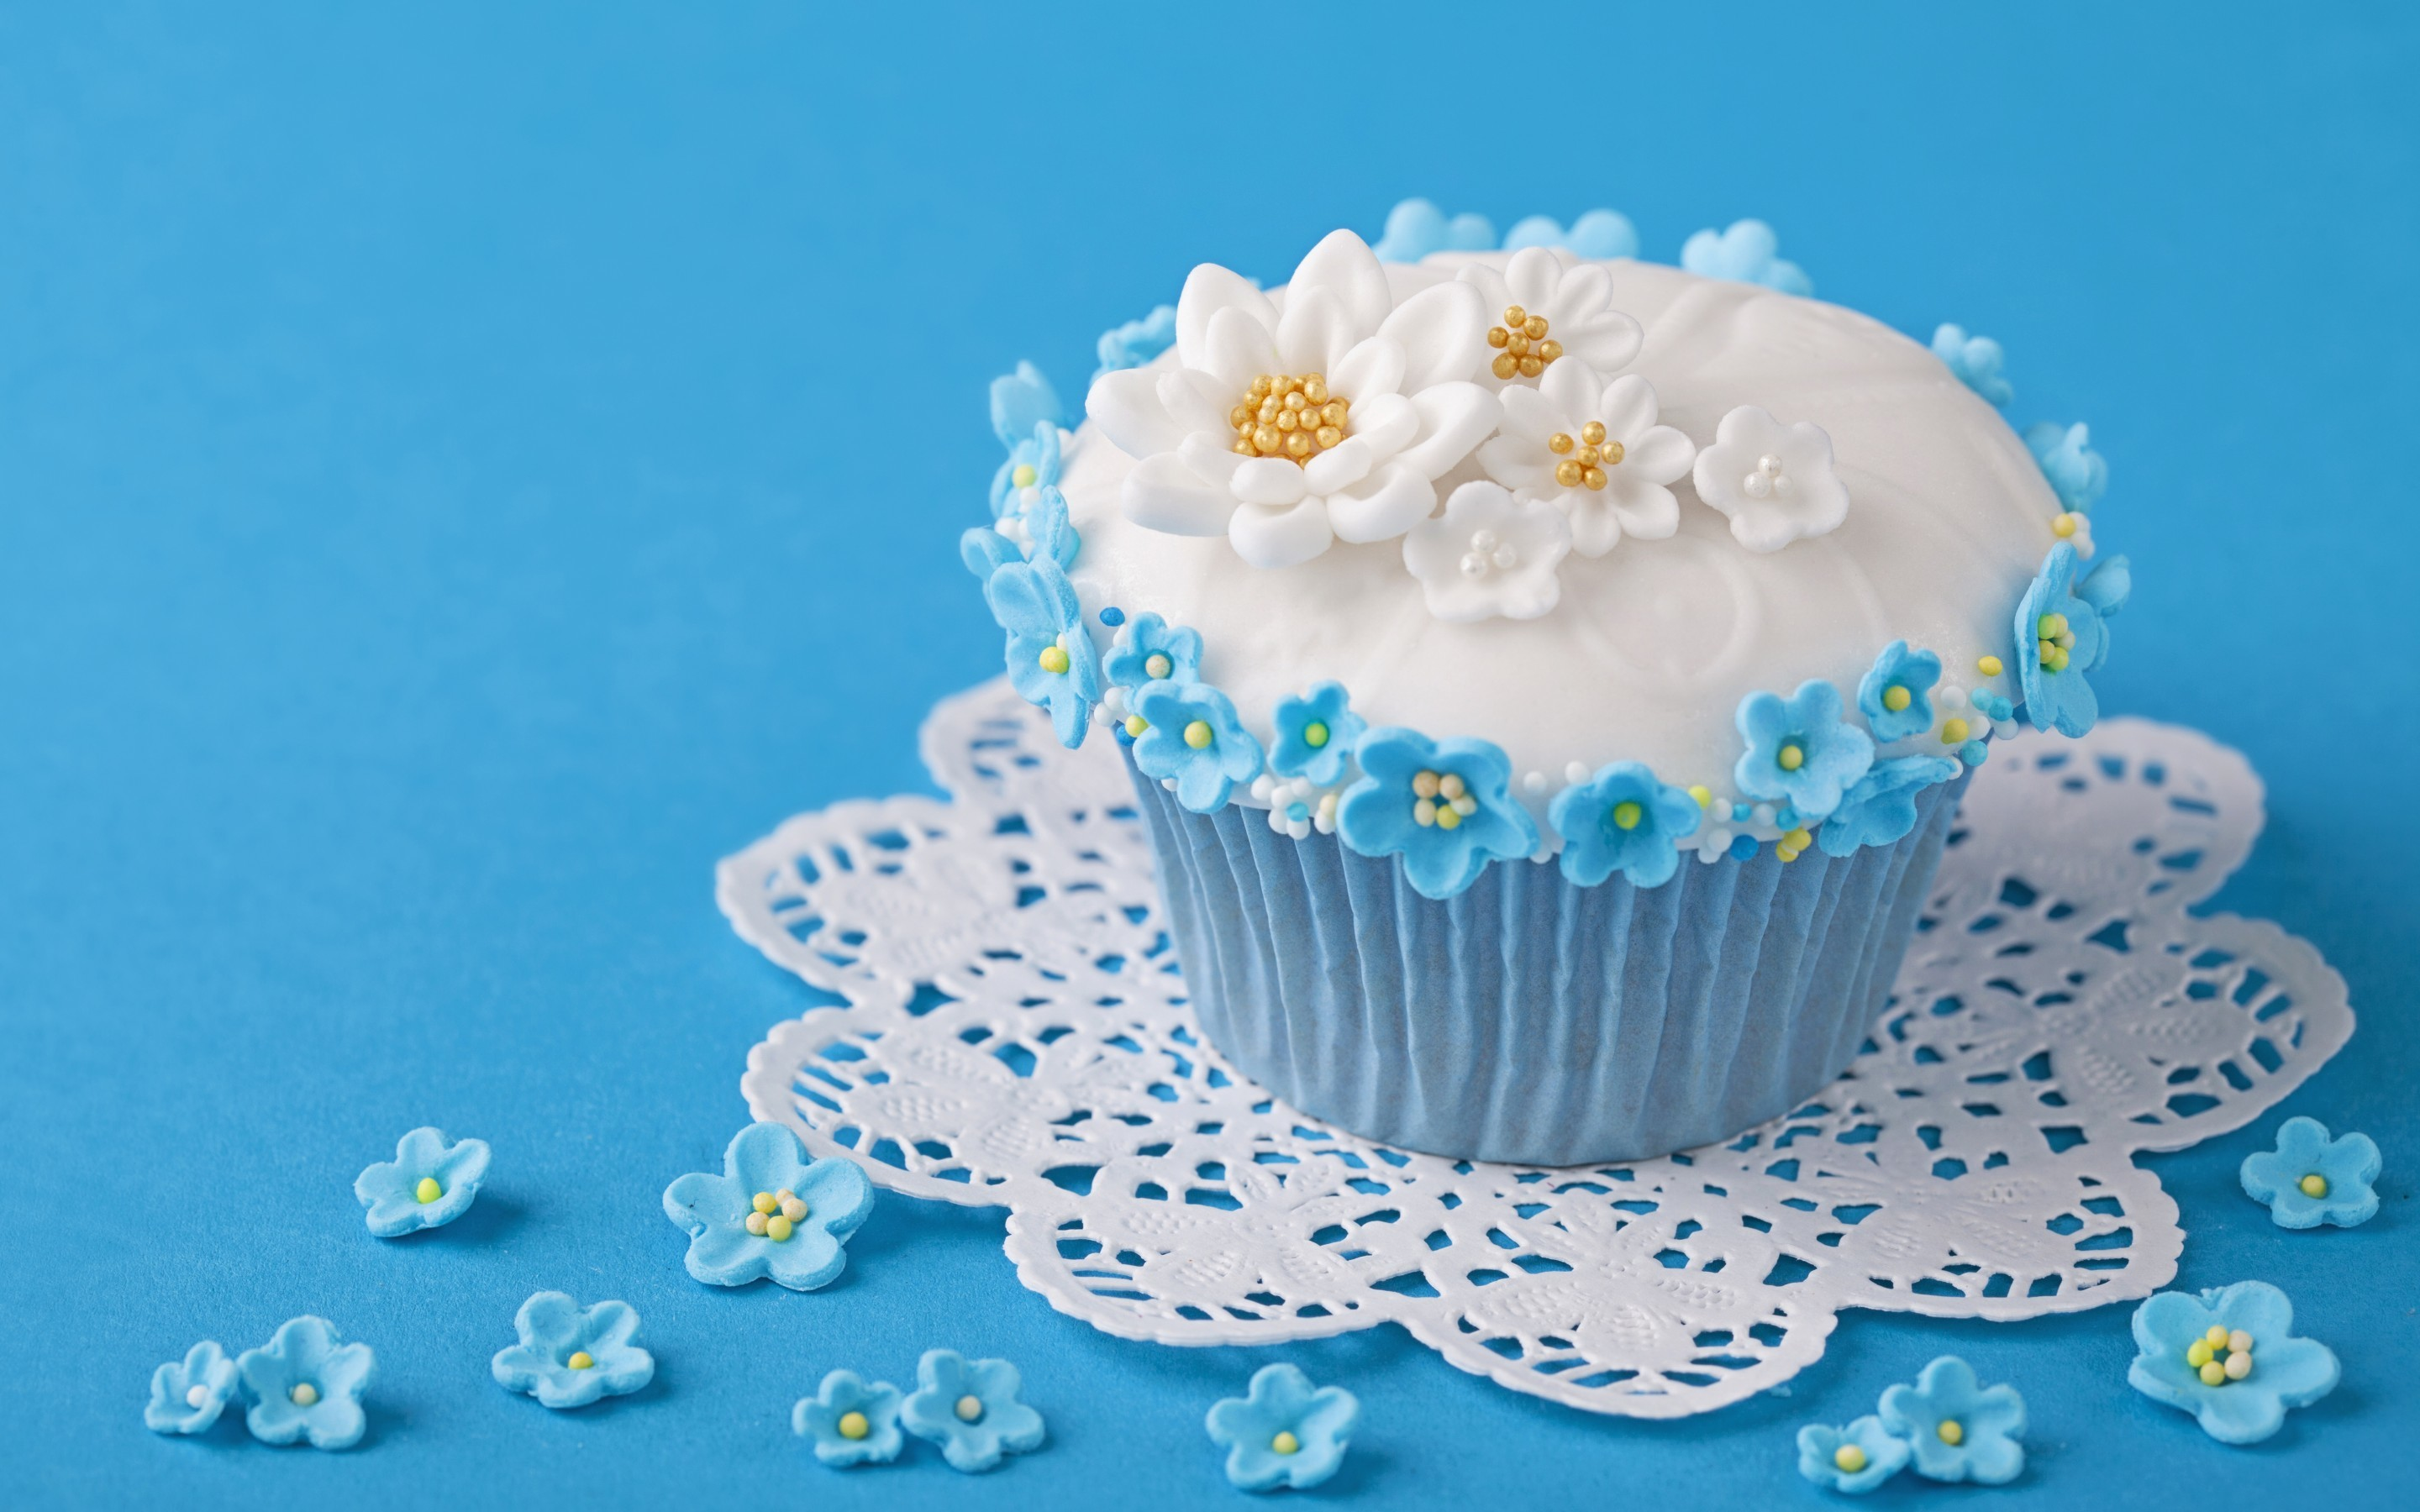 Res: 2880x1800, Cupcake Wallpapers 15 2880 x 1800 340x220